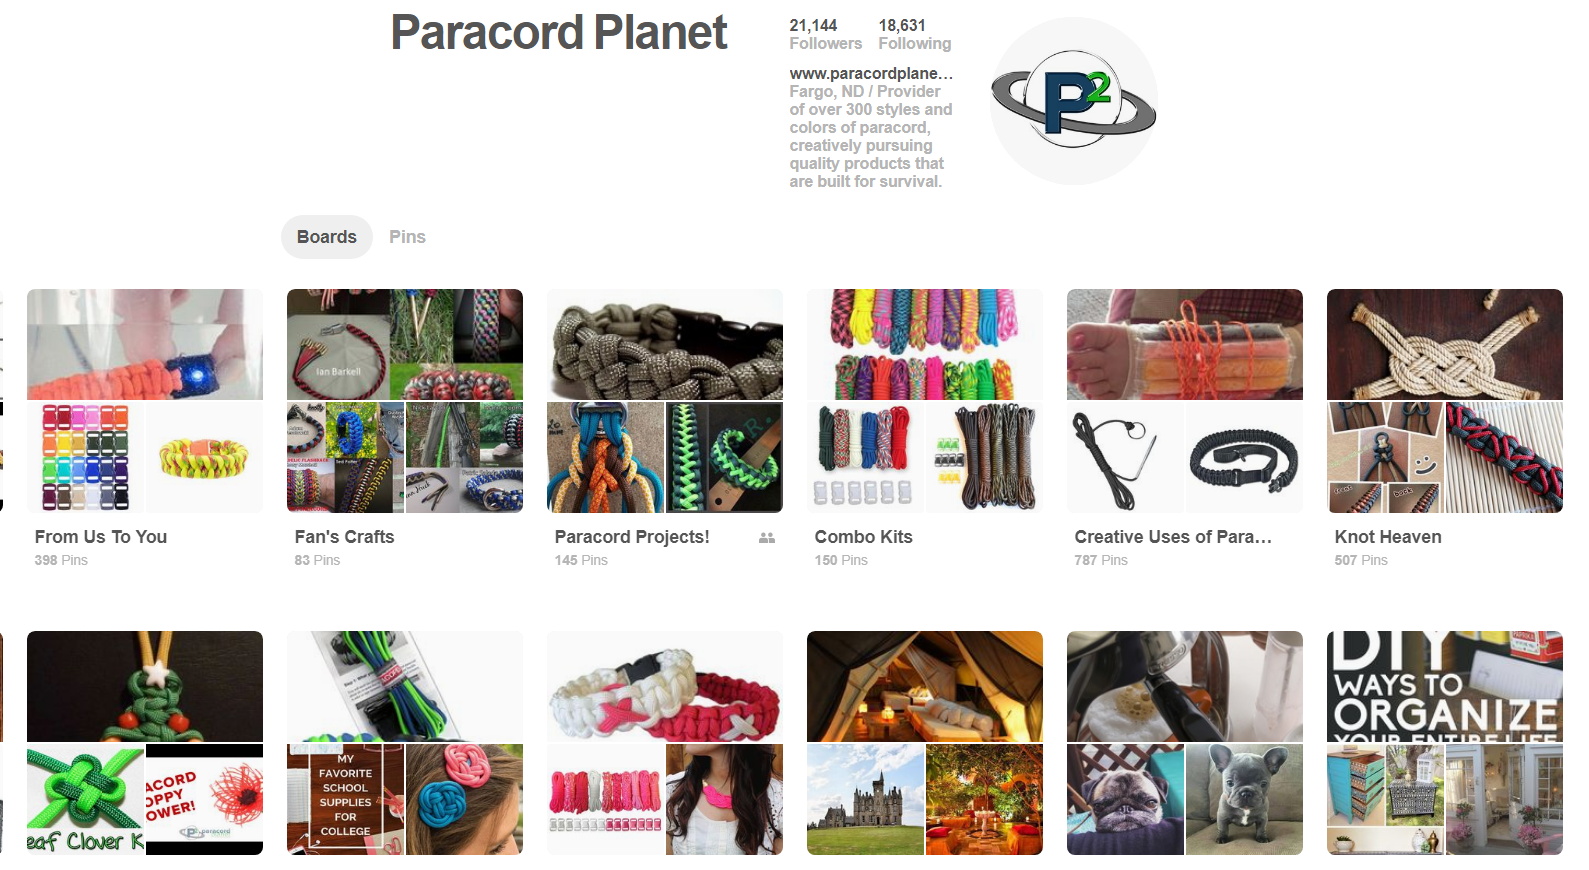 Paracord Planet on Pinterest